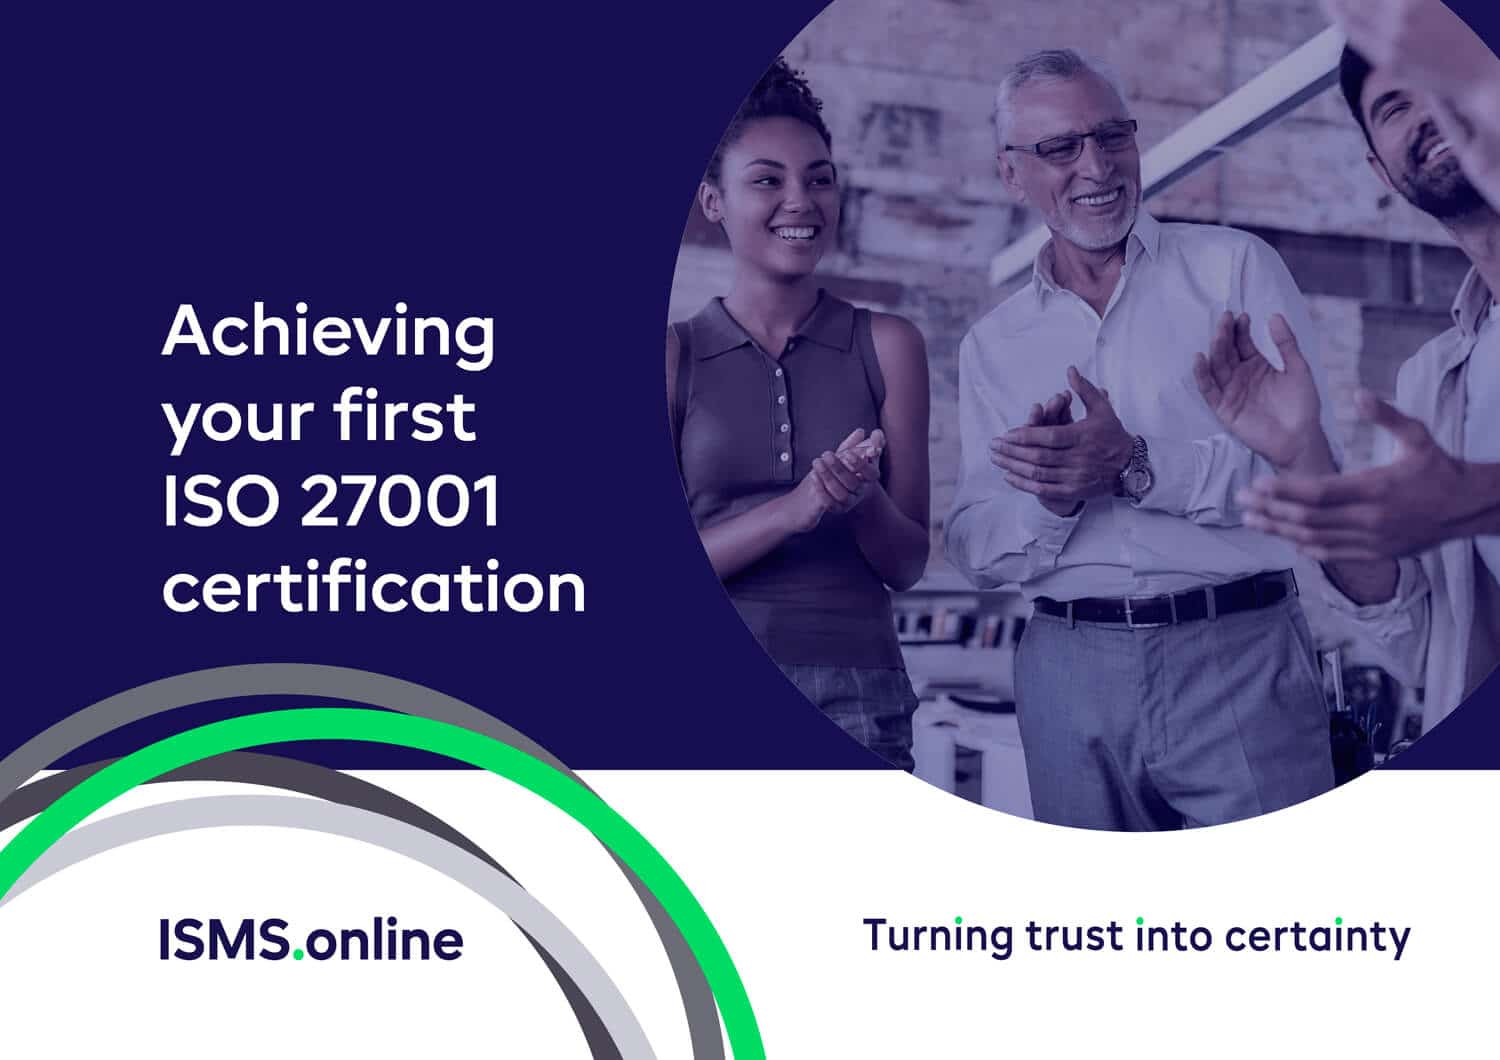 Achieving-Your-First-ISO-27001-Certification